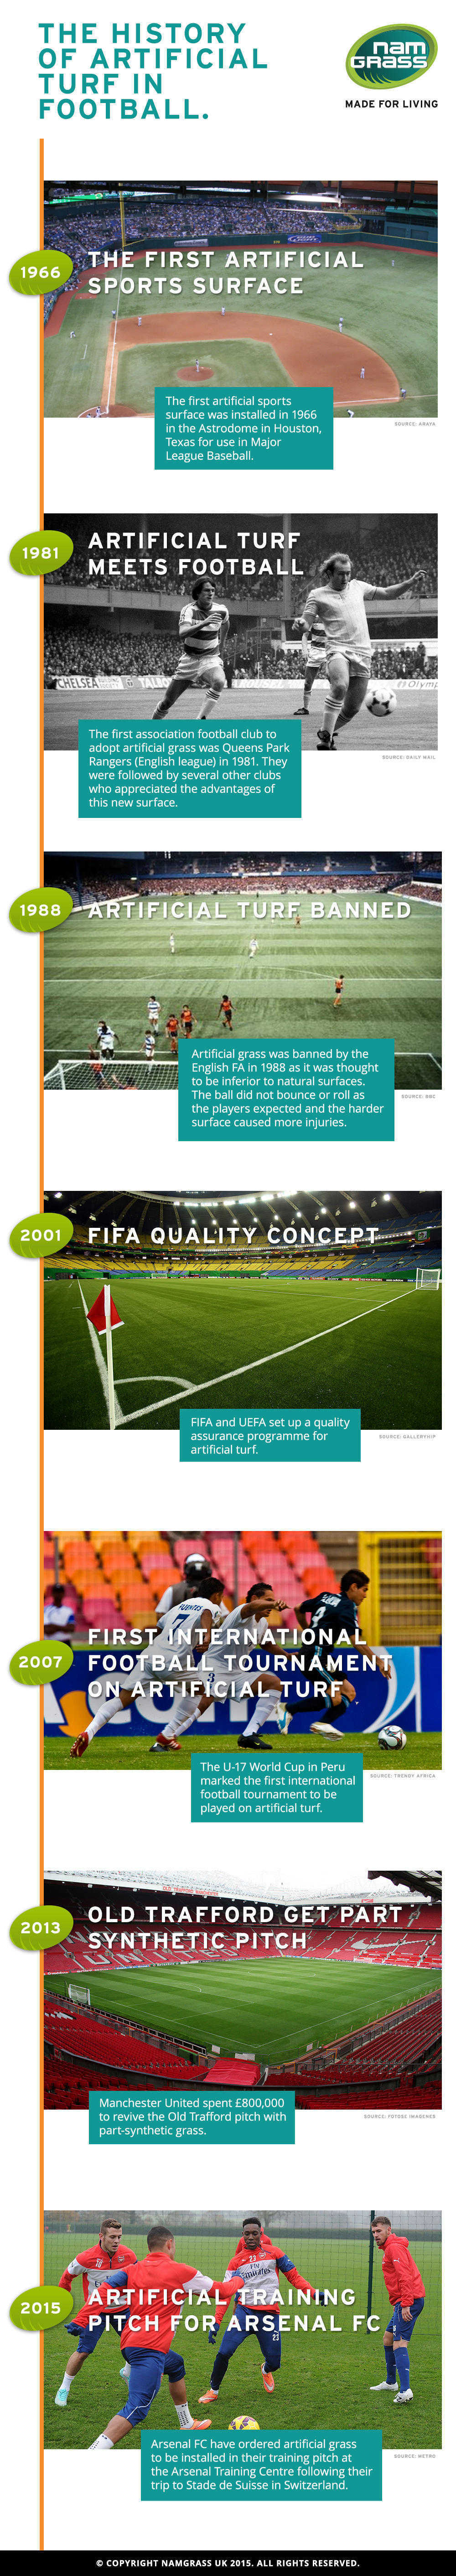 Artificial Turf in Football History